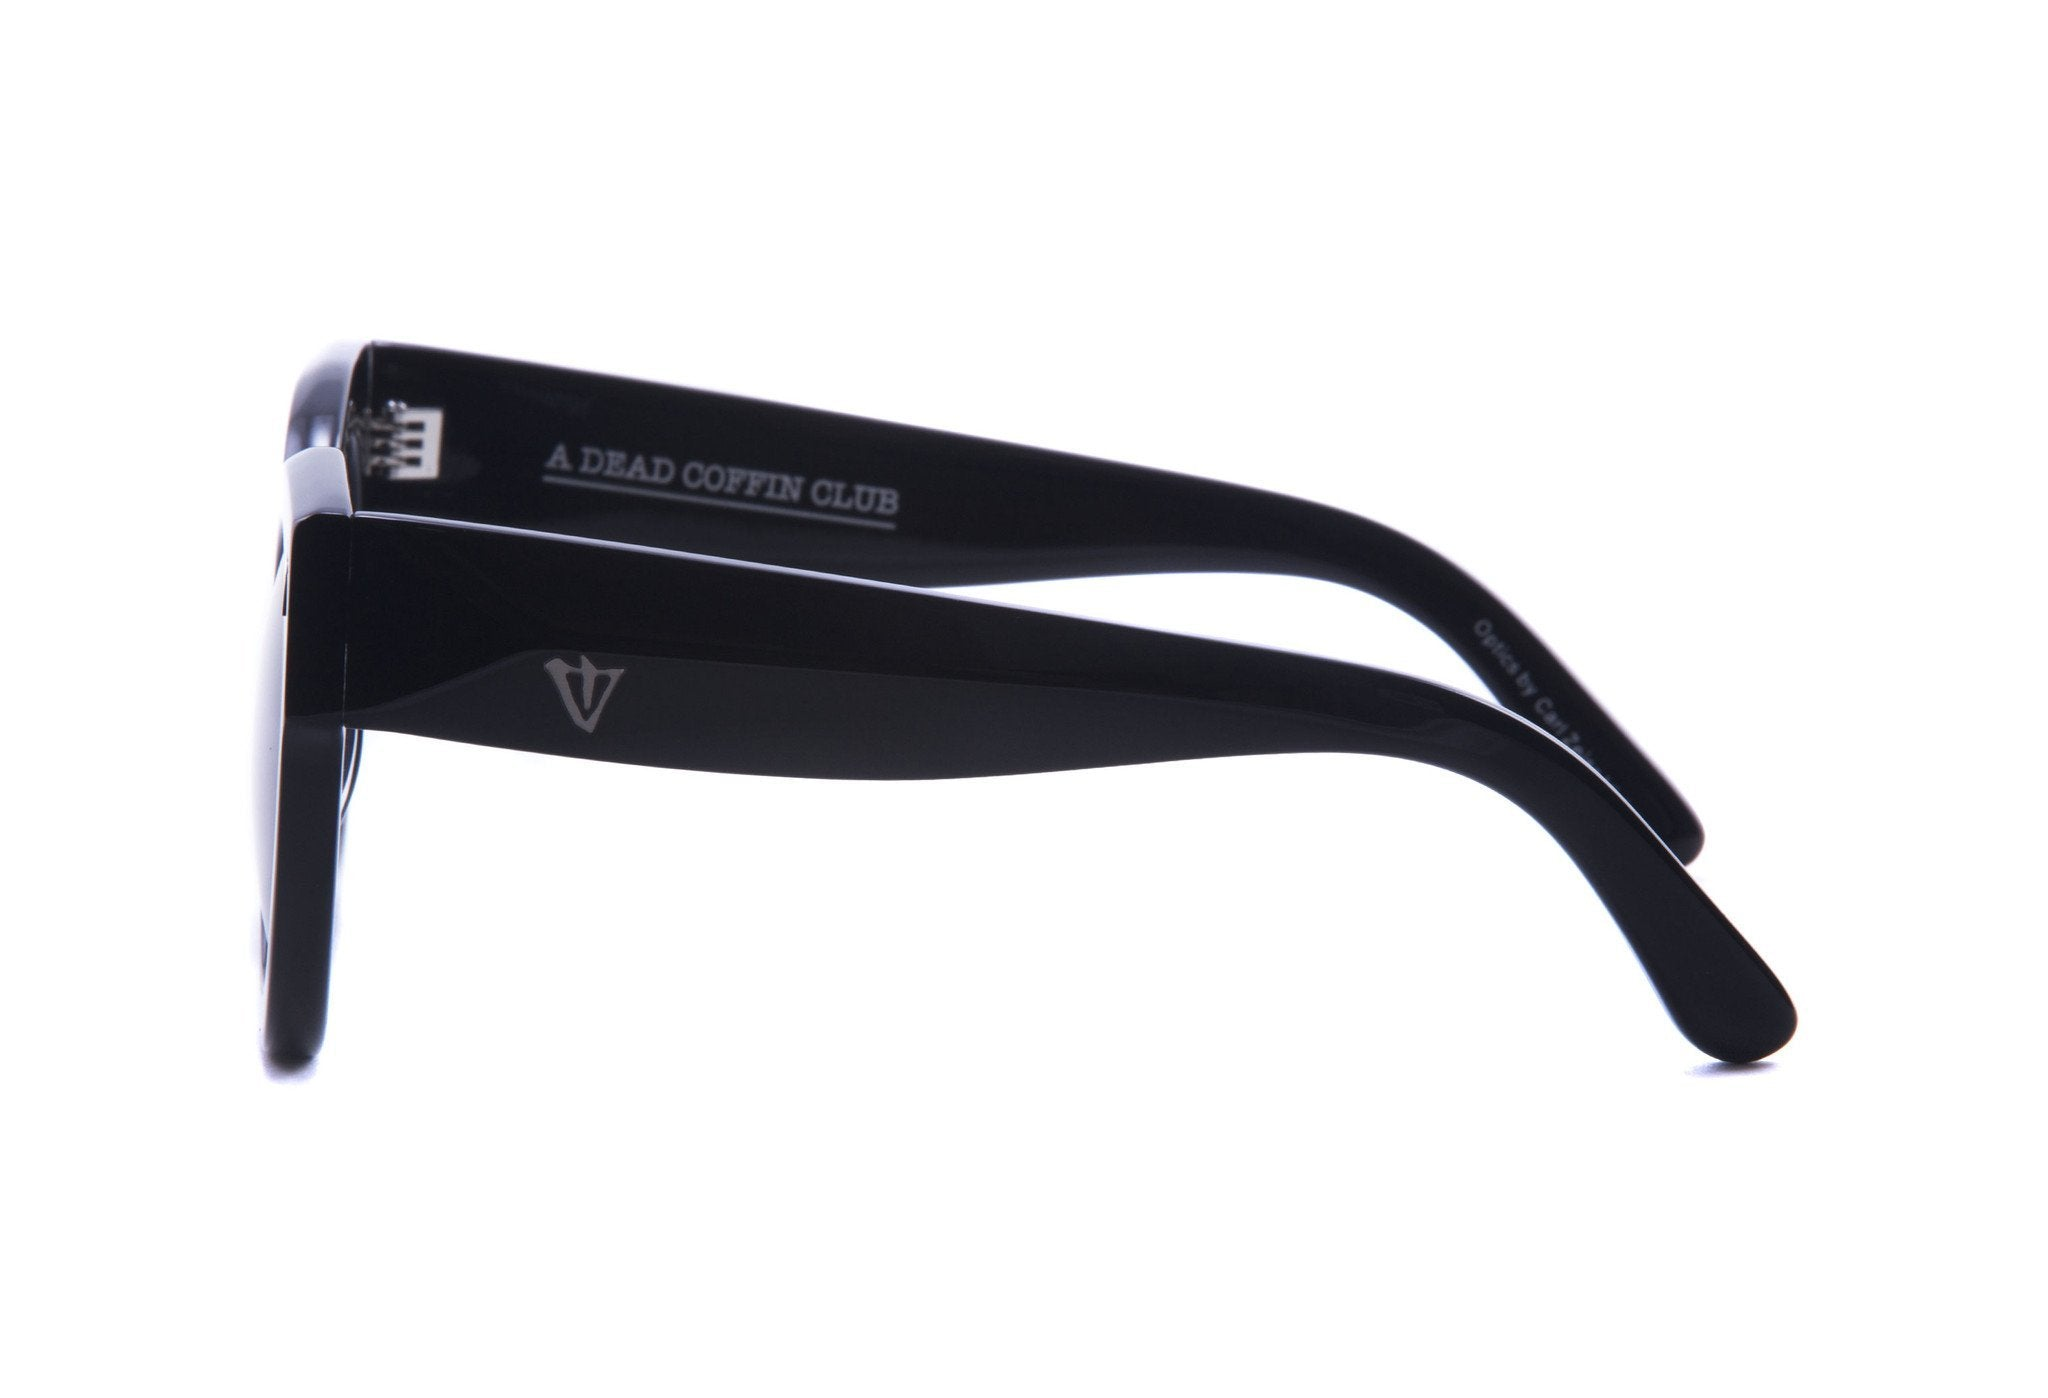 Valley Eyewear | A Dead Coffin Club | Sunglasses